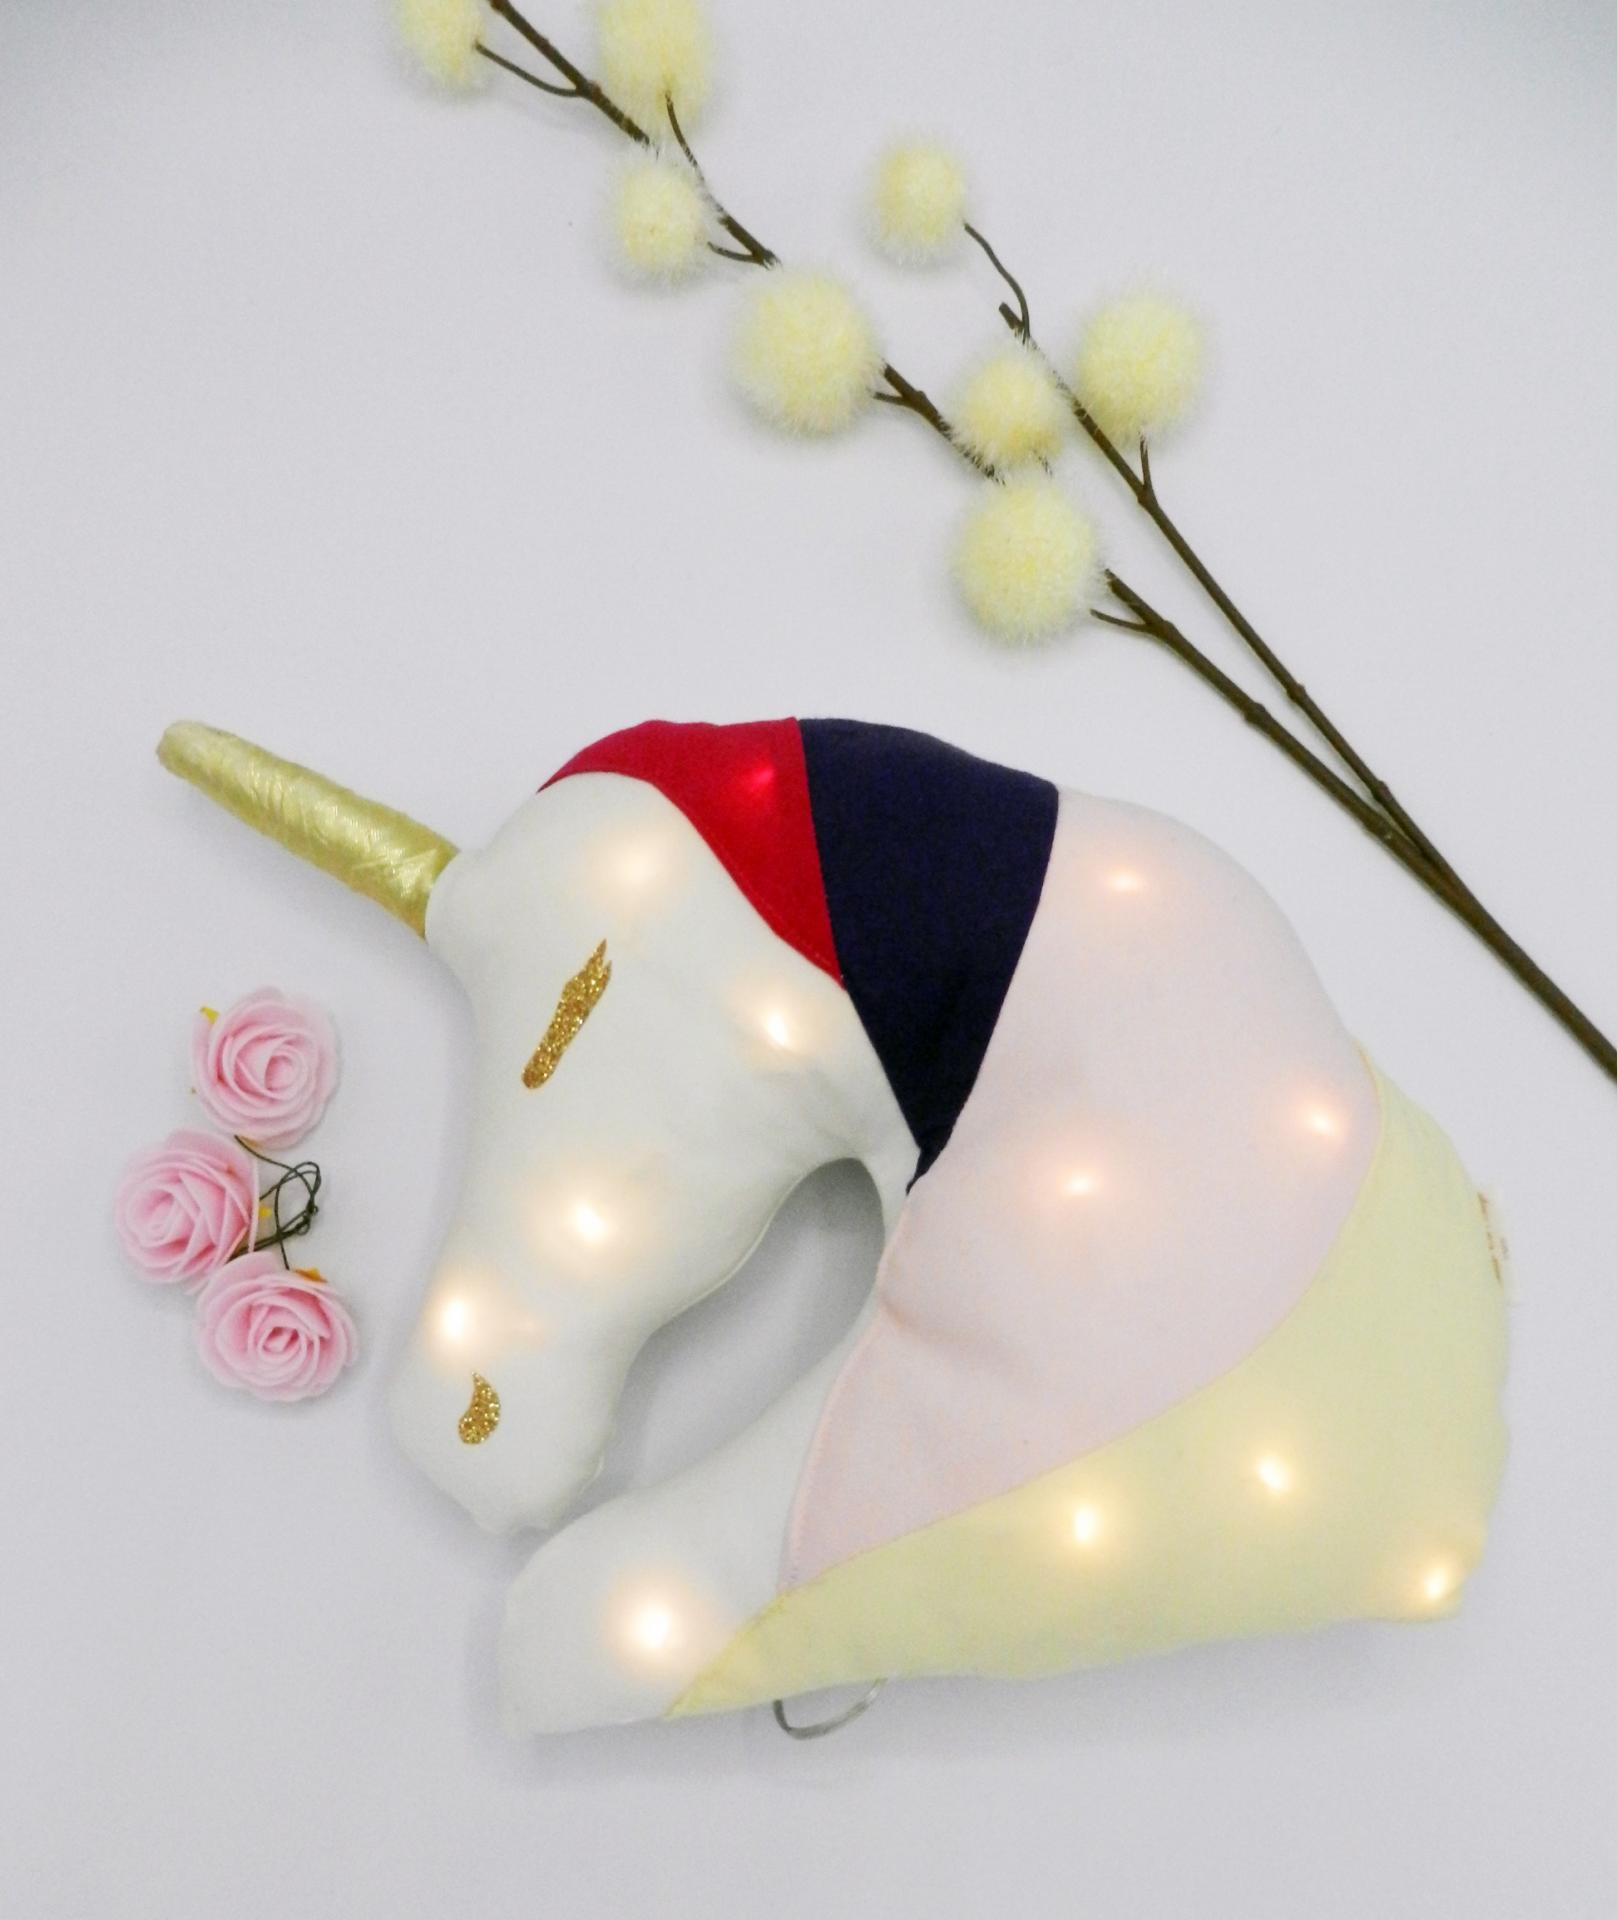 Duchesse or ange doaa 69 coussin veilleuse licorne personnalisable a